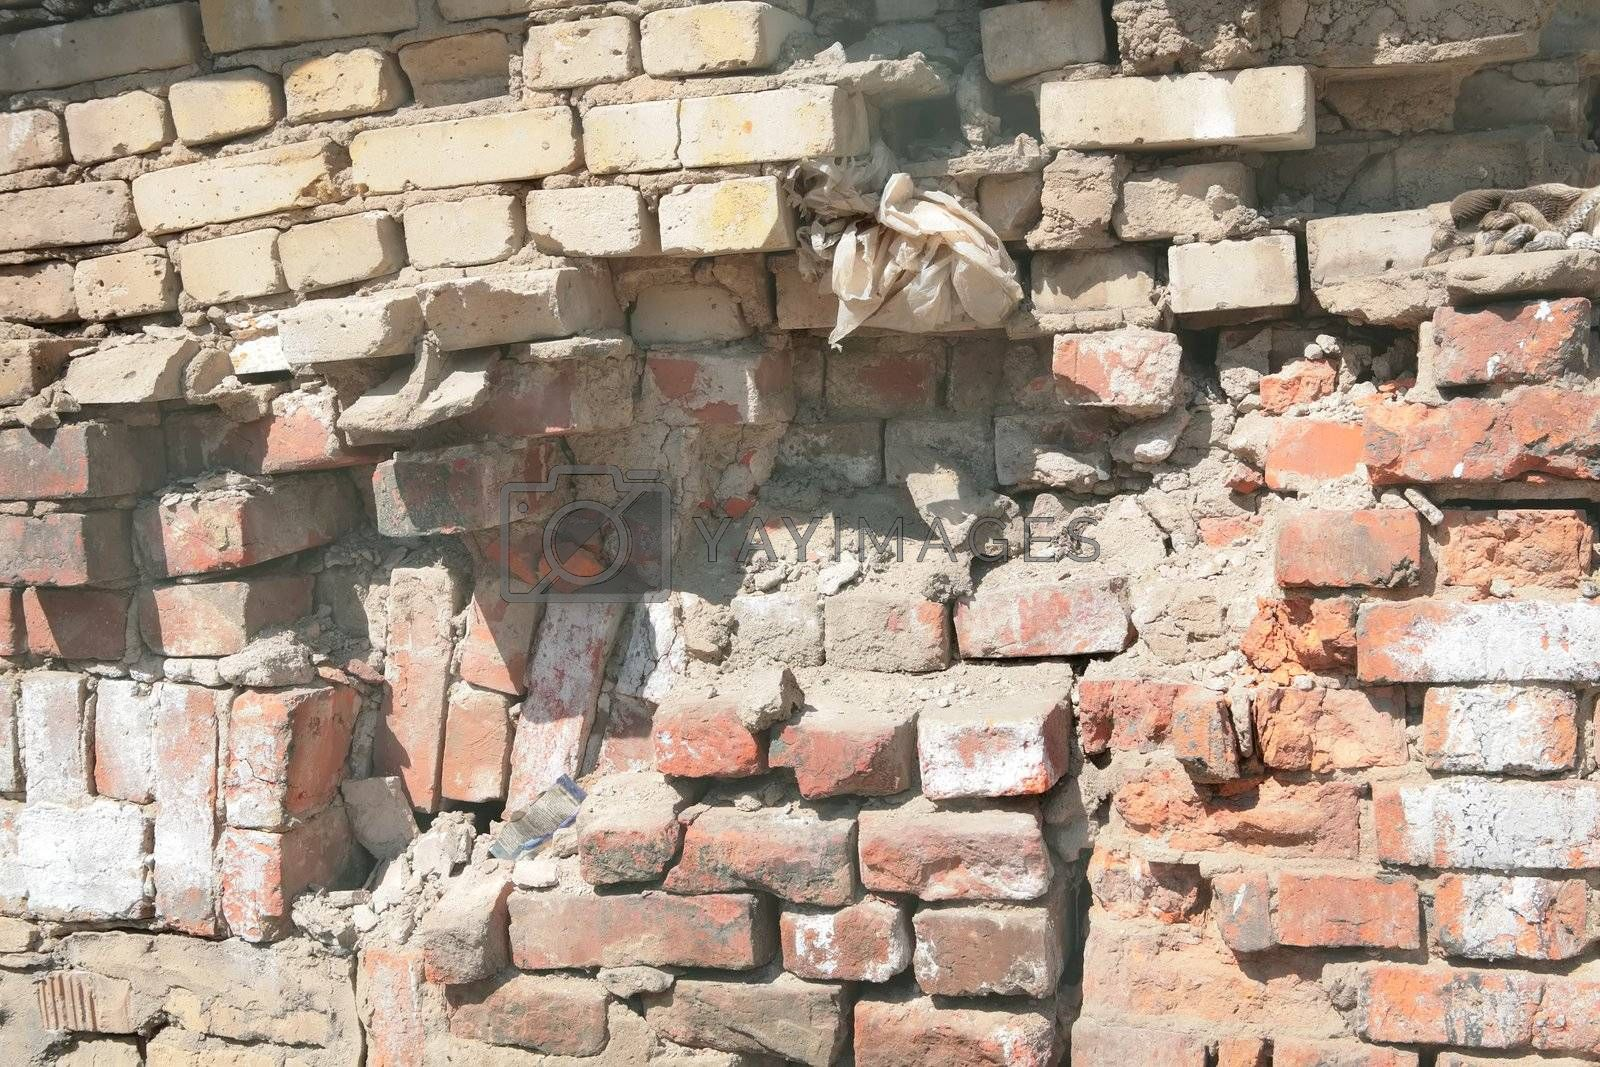 Royalty free image of brickwork wall by Astroid